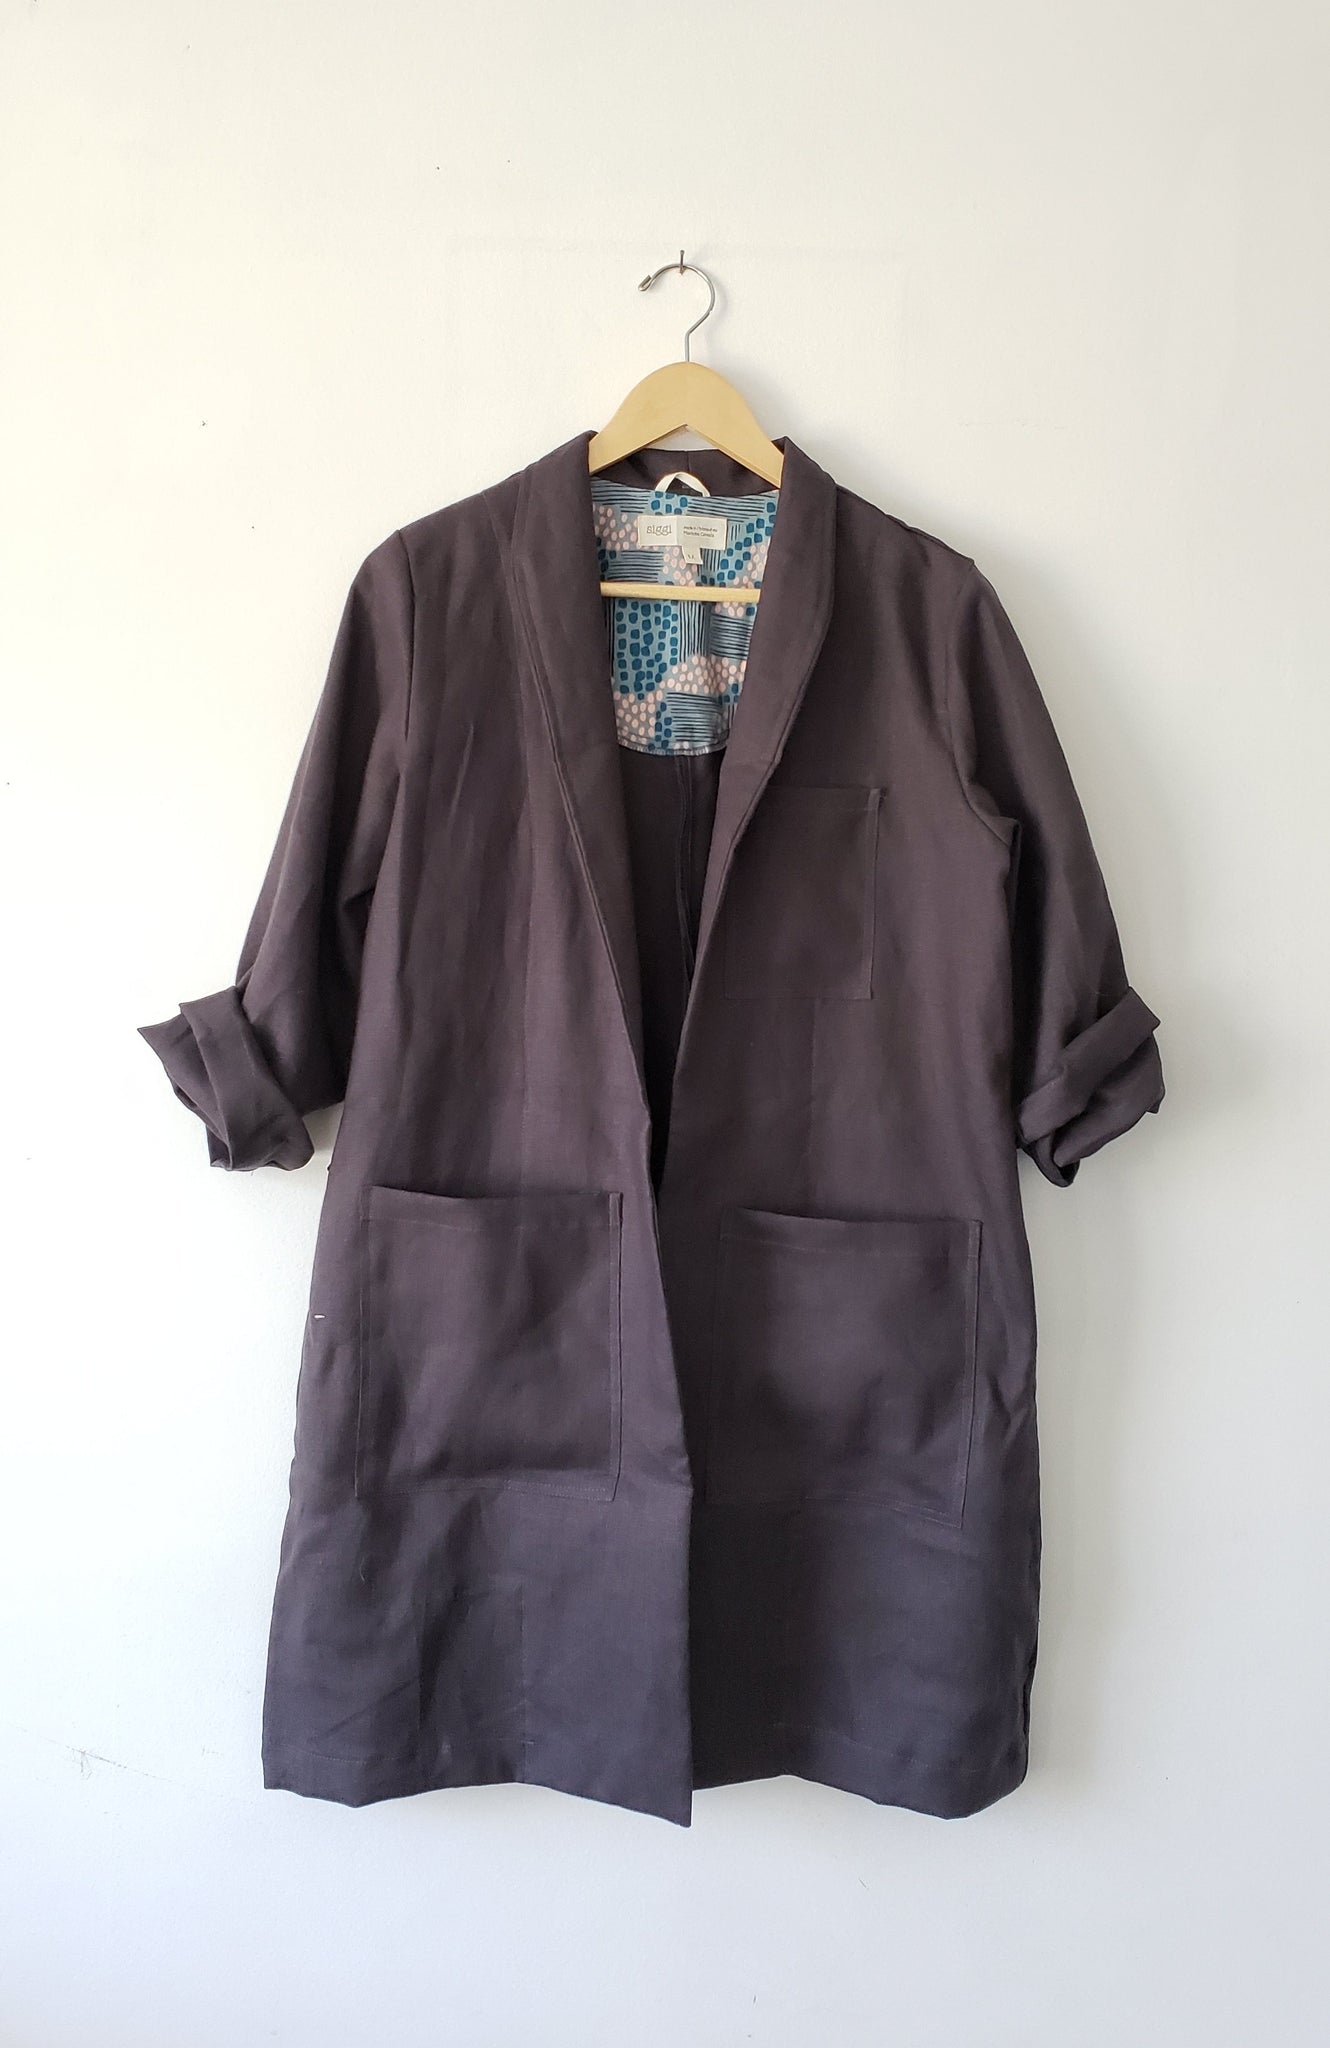 charcoal grey linen labcoat hanging with sleeves rolled up